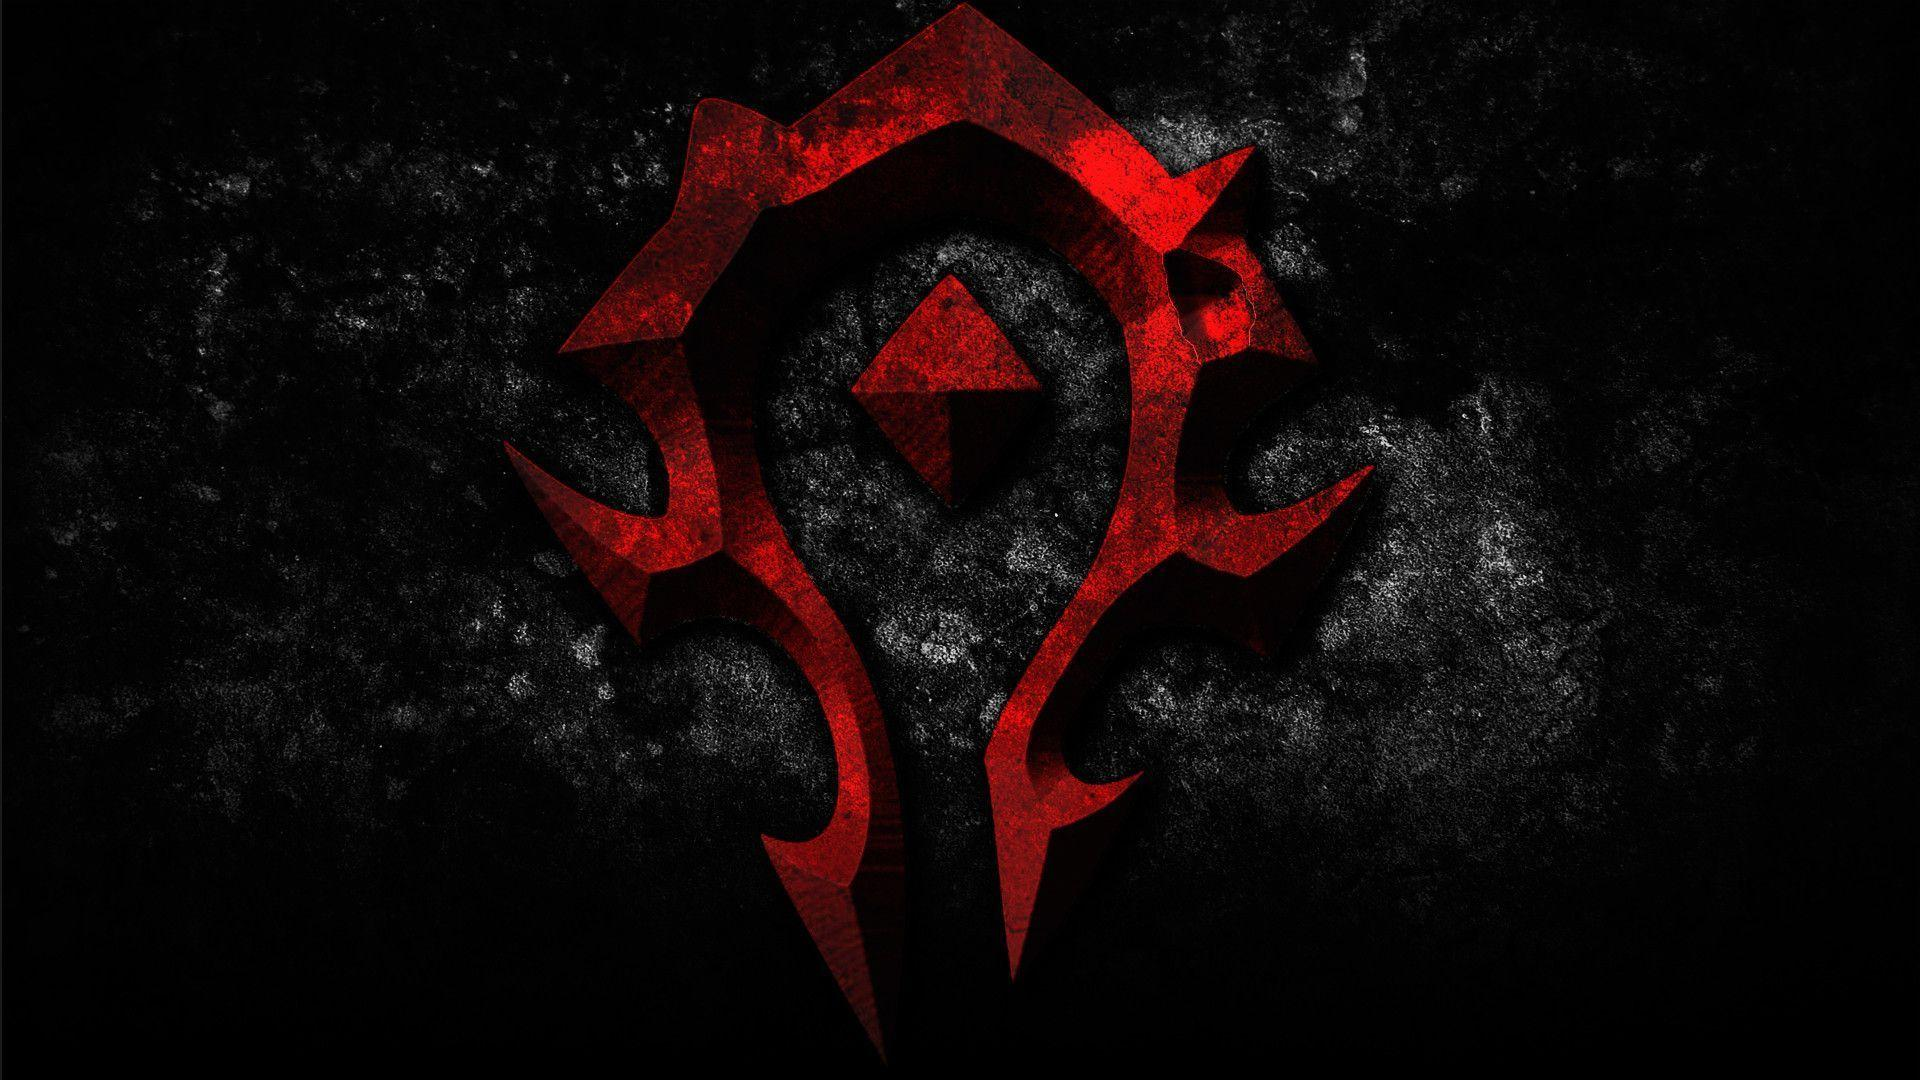 Warcraft Horde Logo Symbol Wallpapers HD